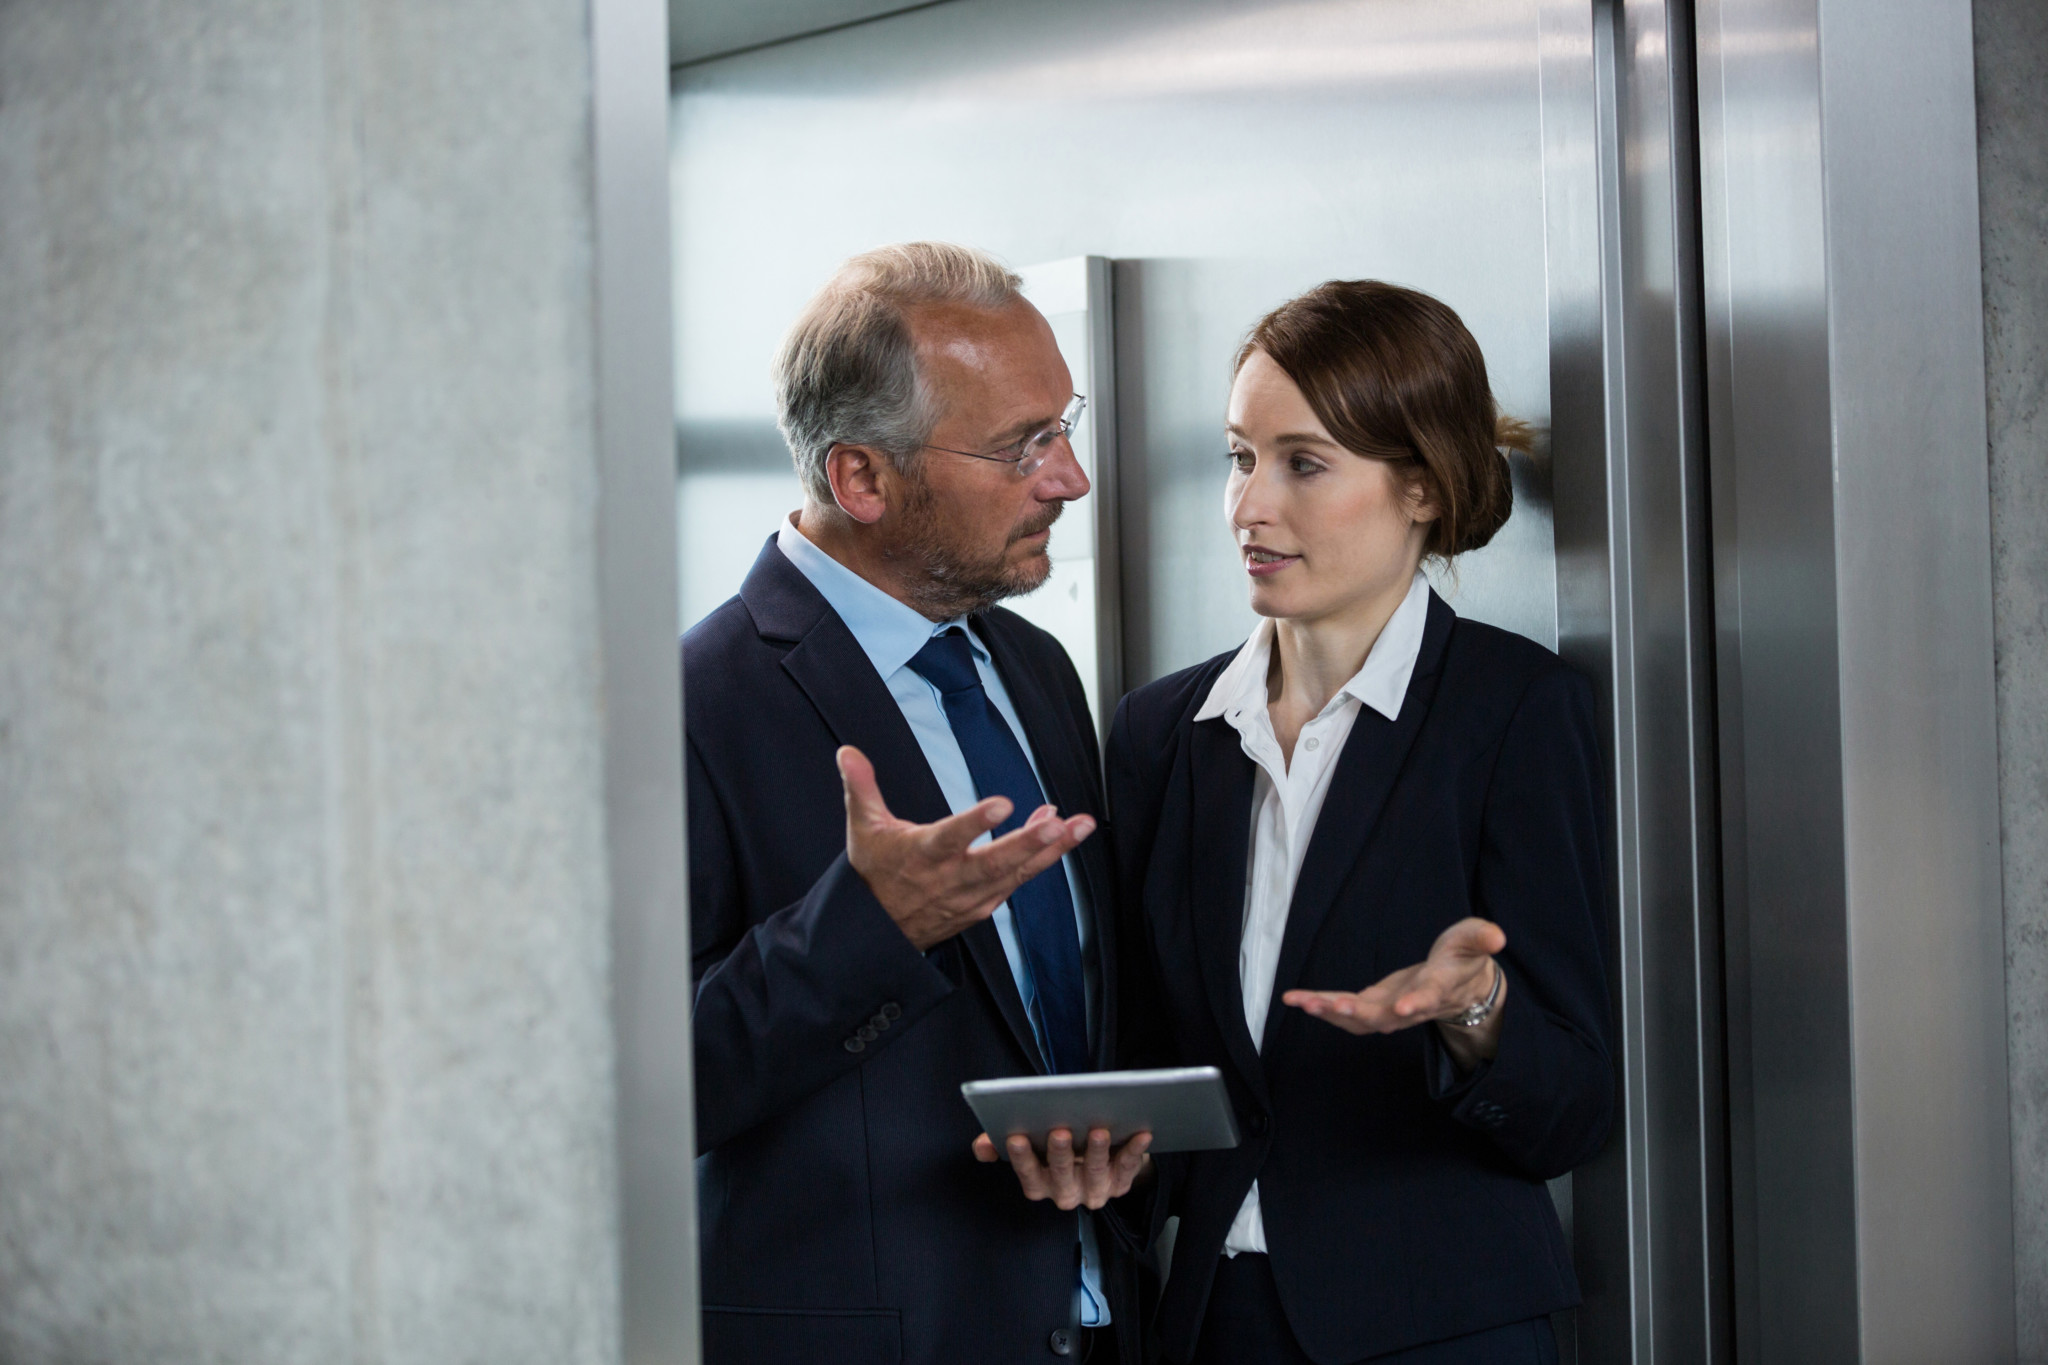 Businessman with colleague in an elevator